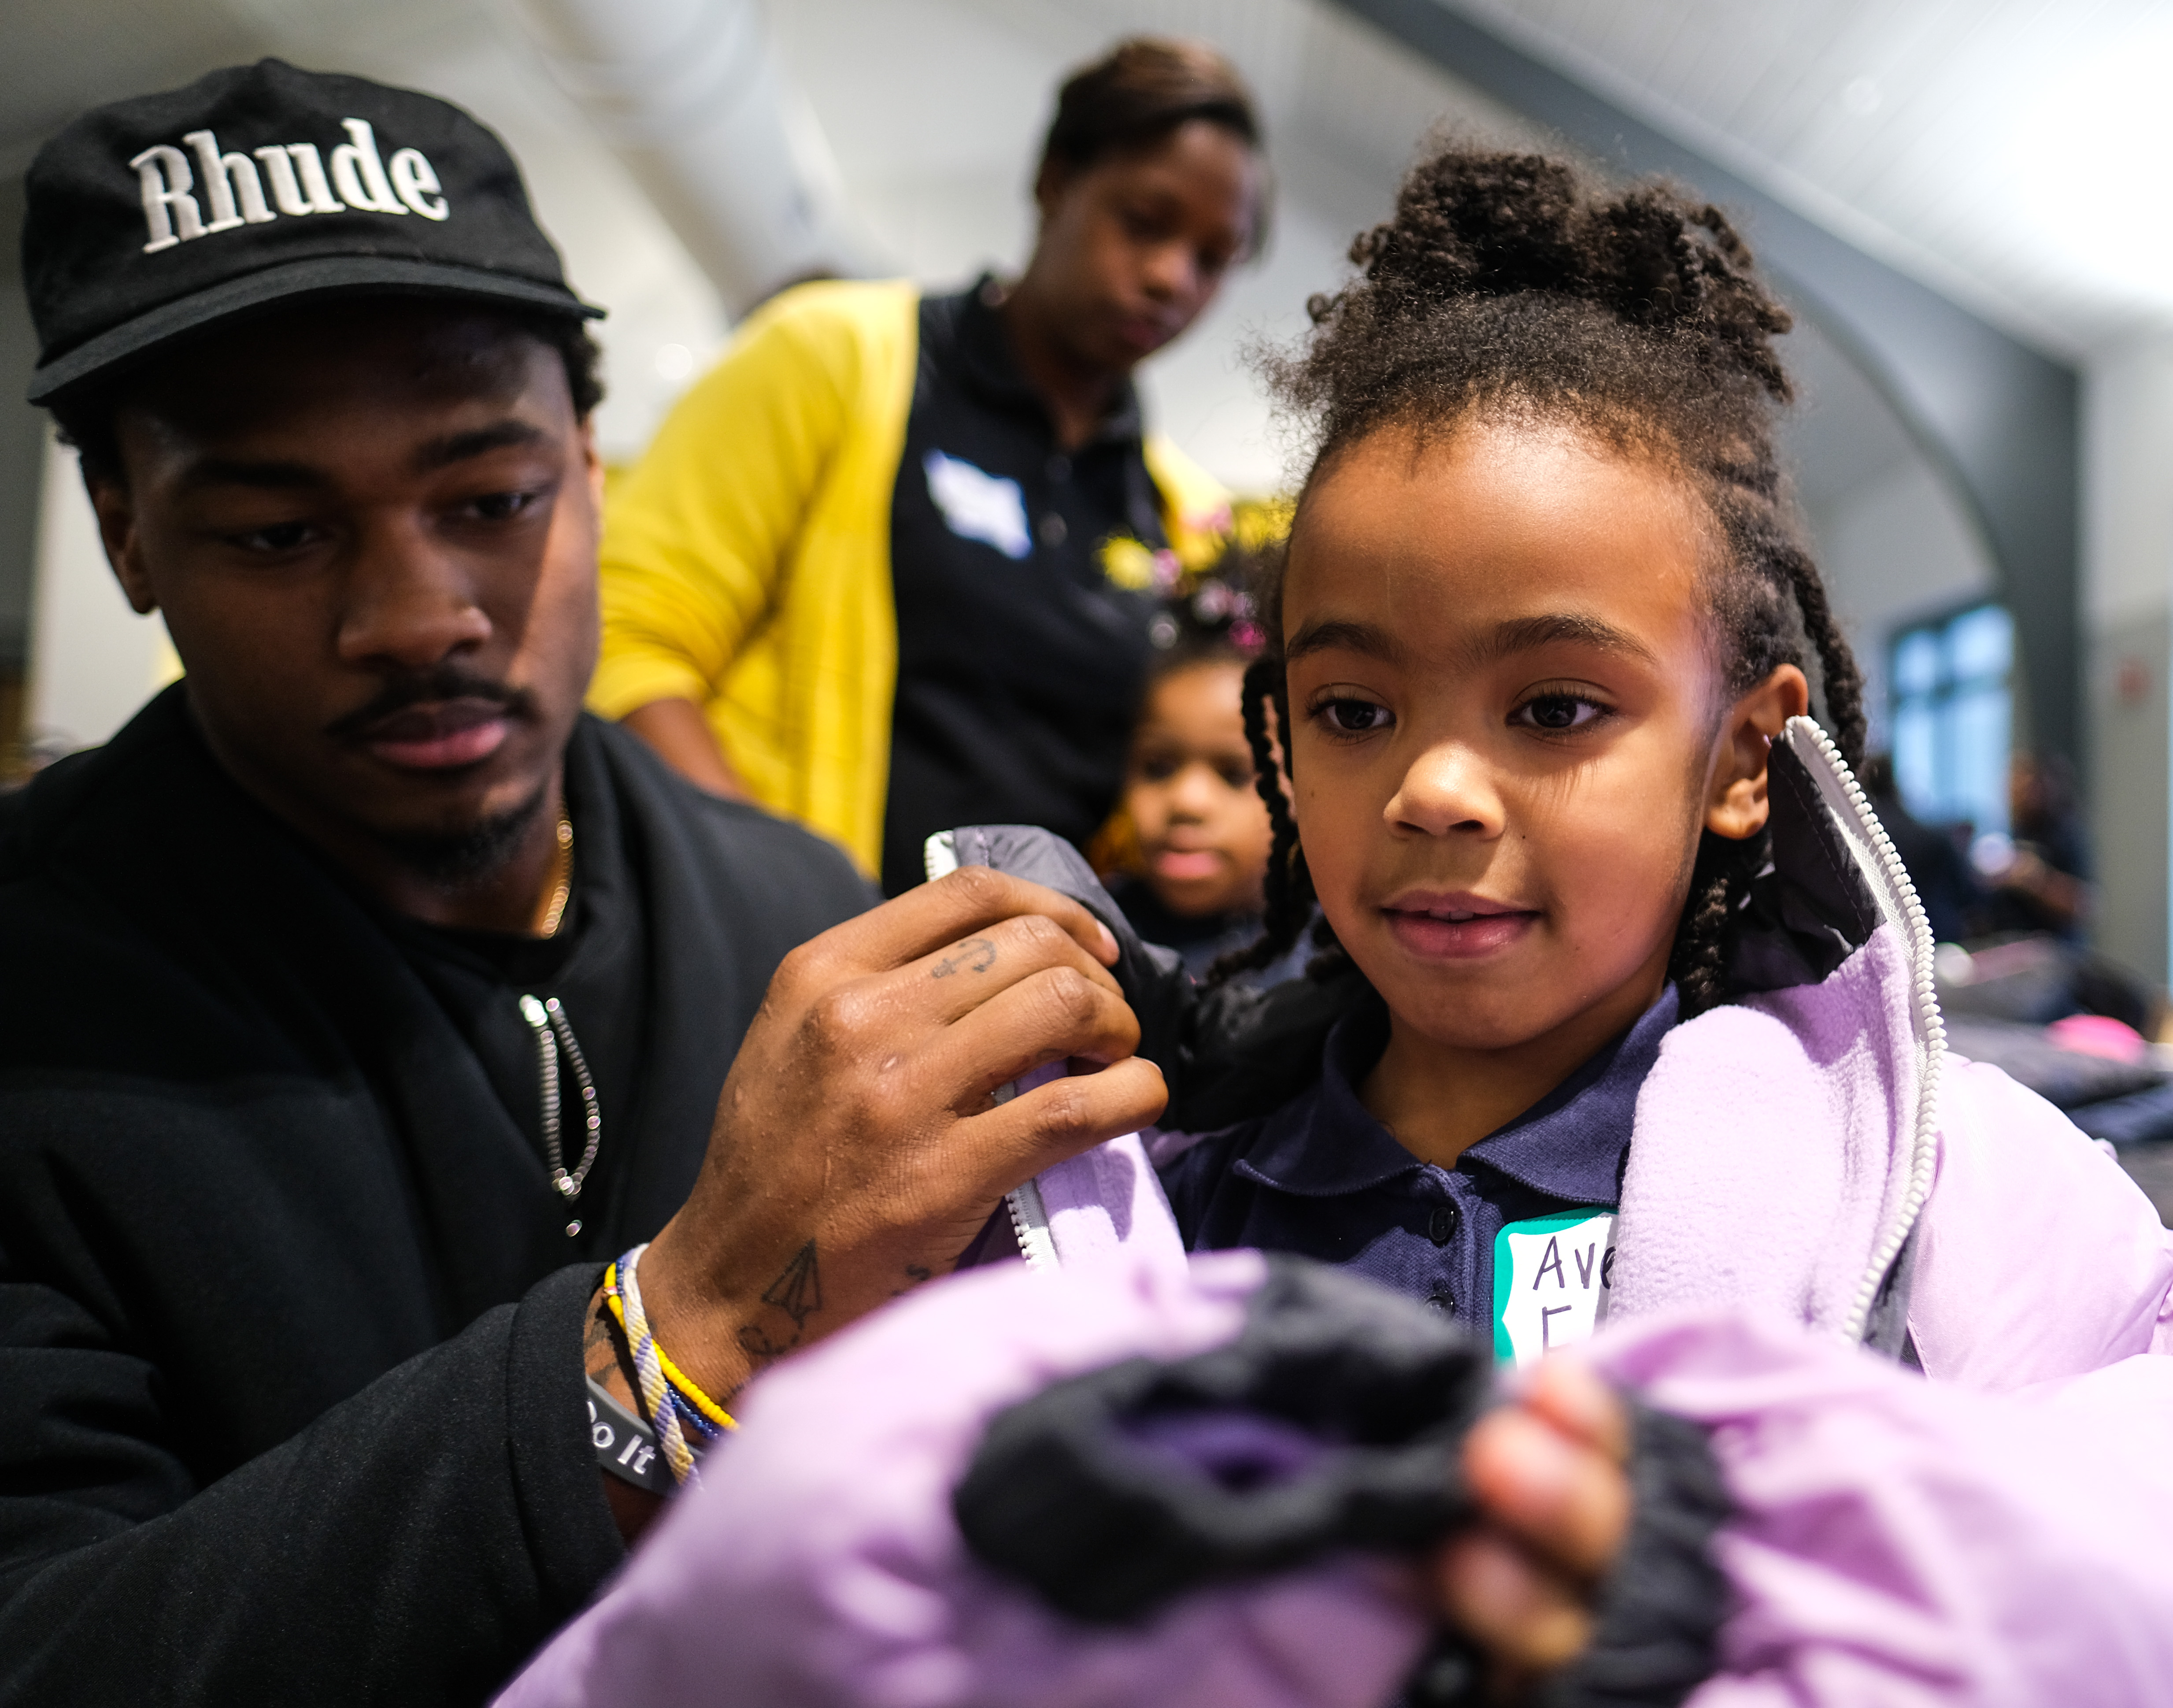 Vikings Stefon Diggs Returns To Hometown Of Washington To Donate Coats To Students In Need I M Not That Far Off From You